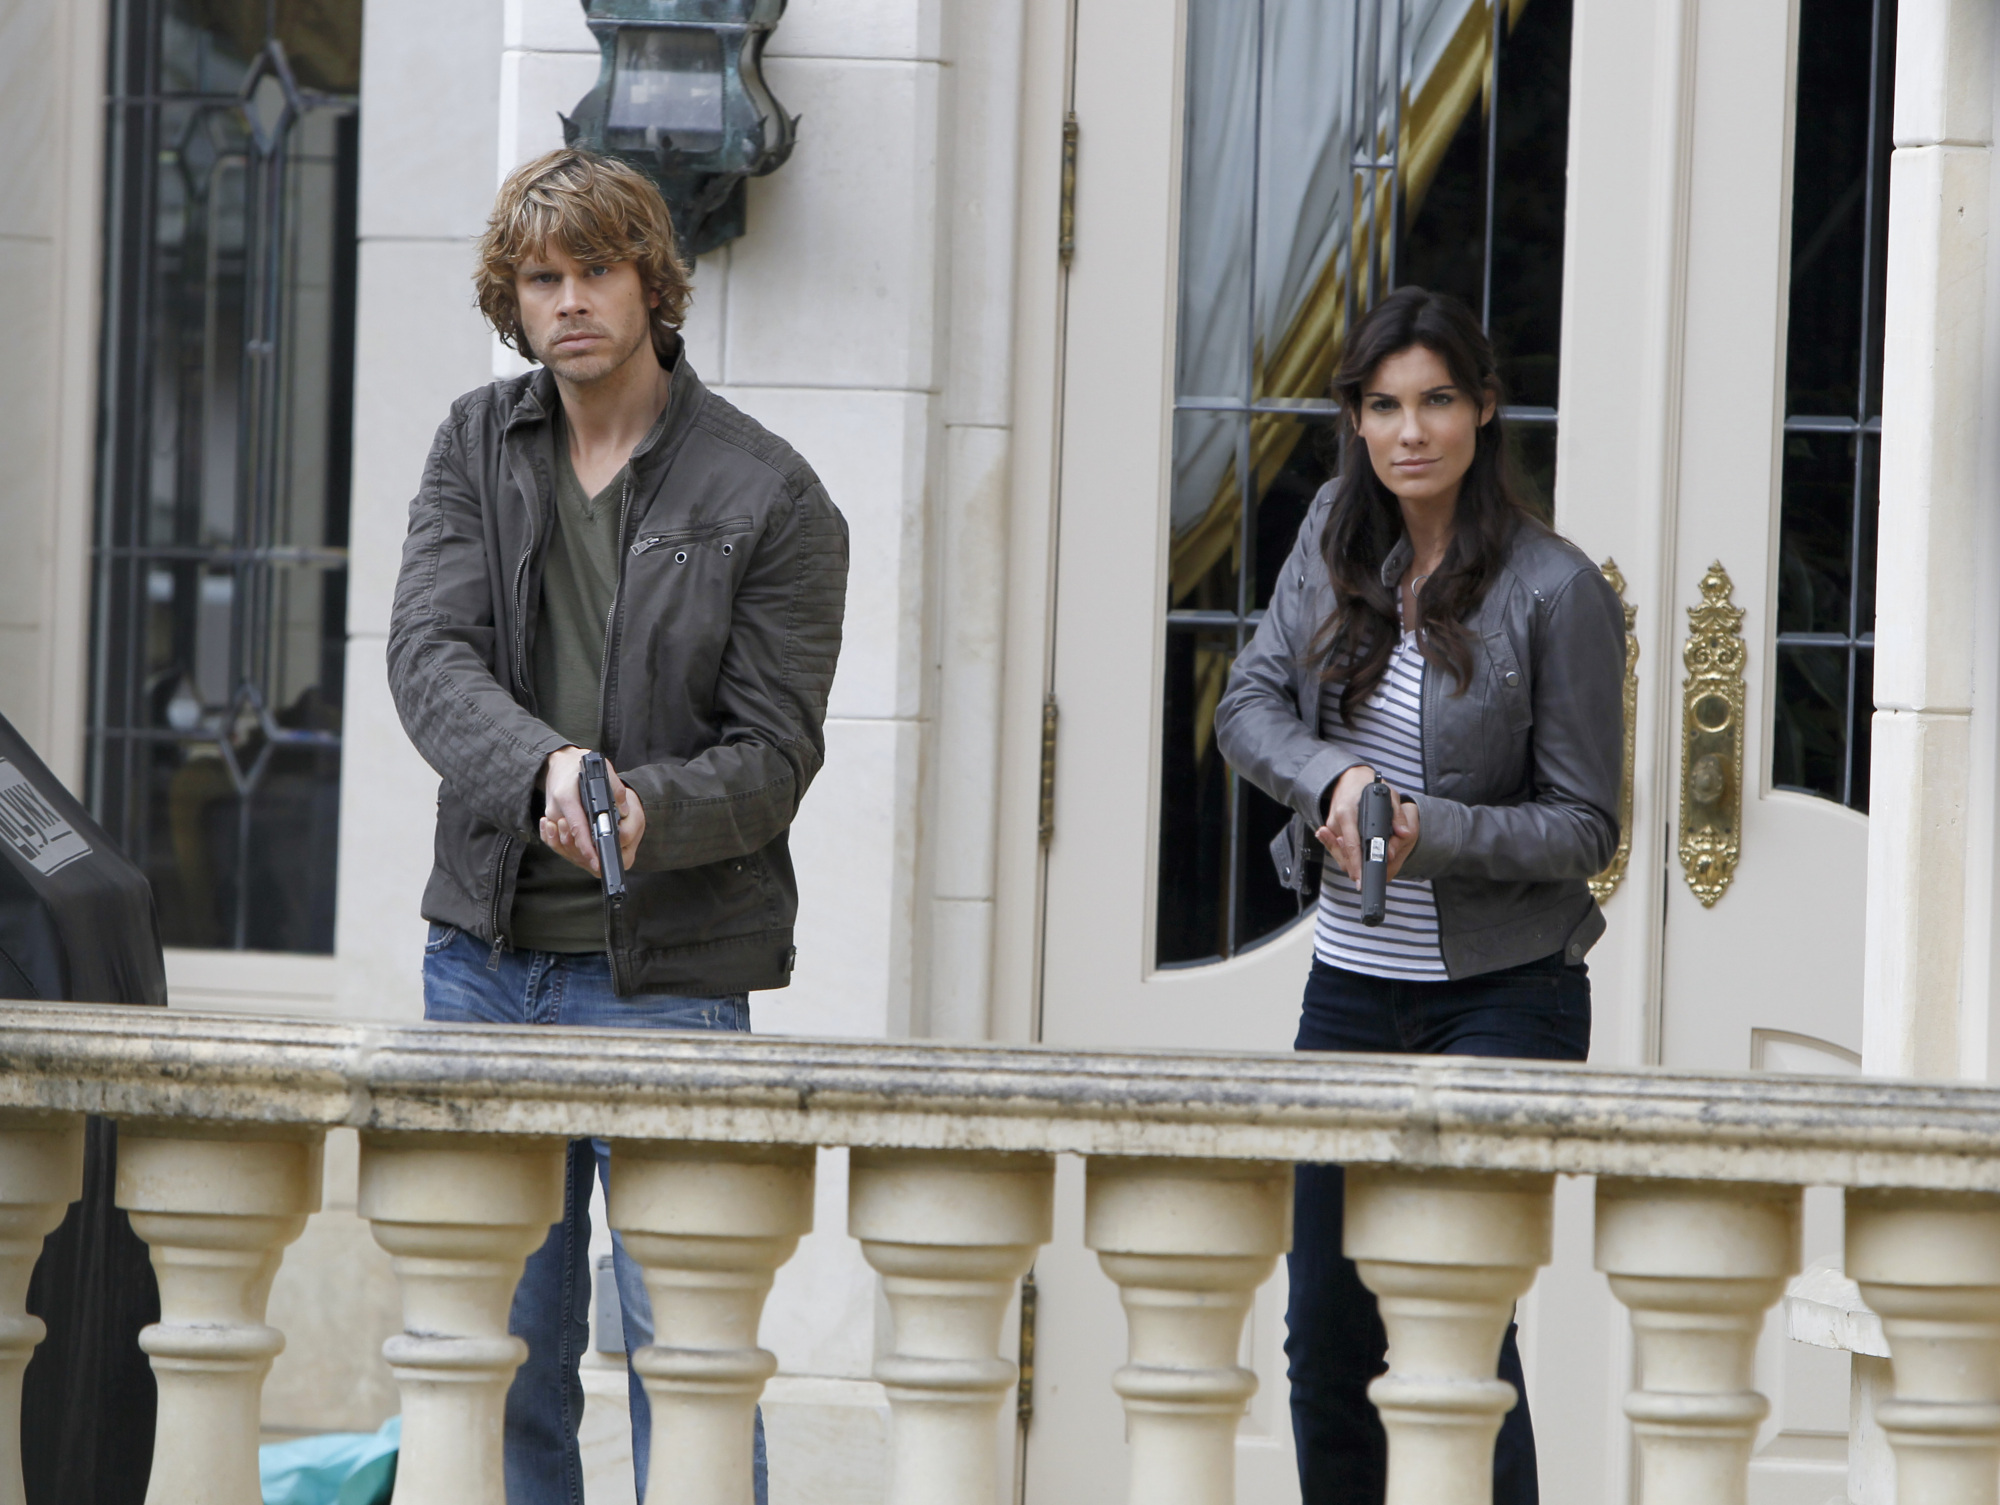 Marty and Kensi